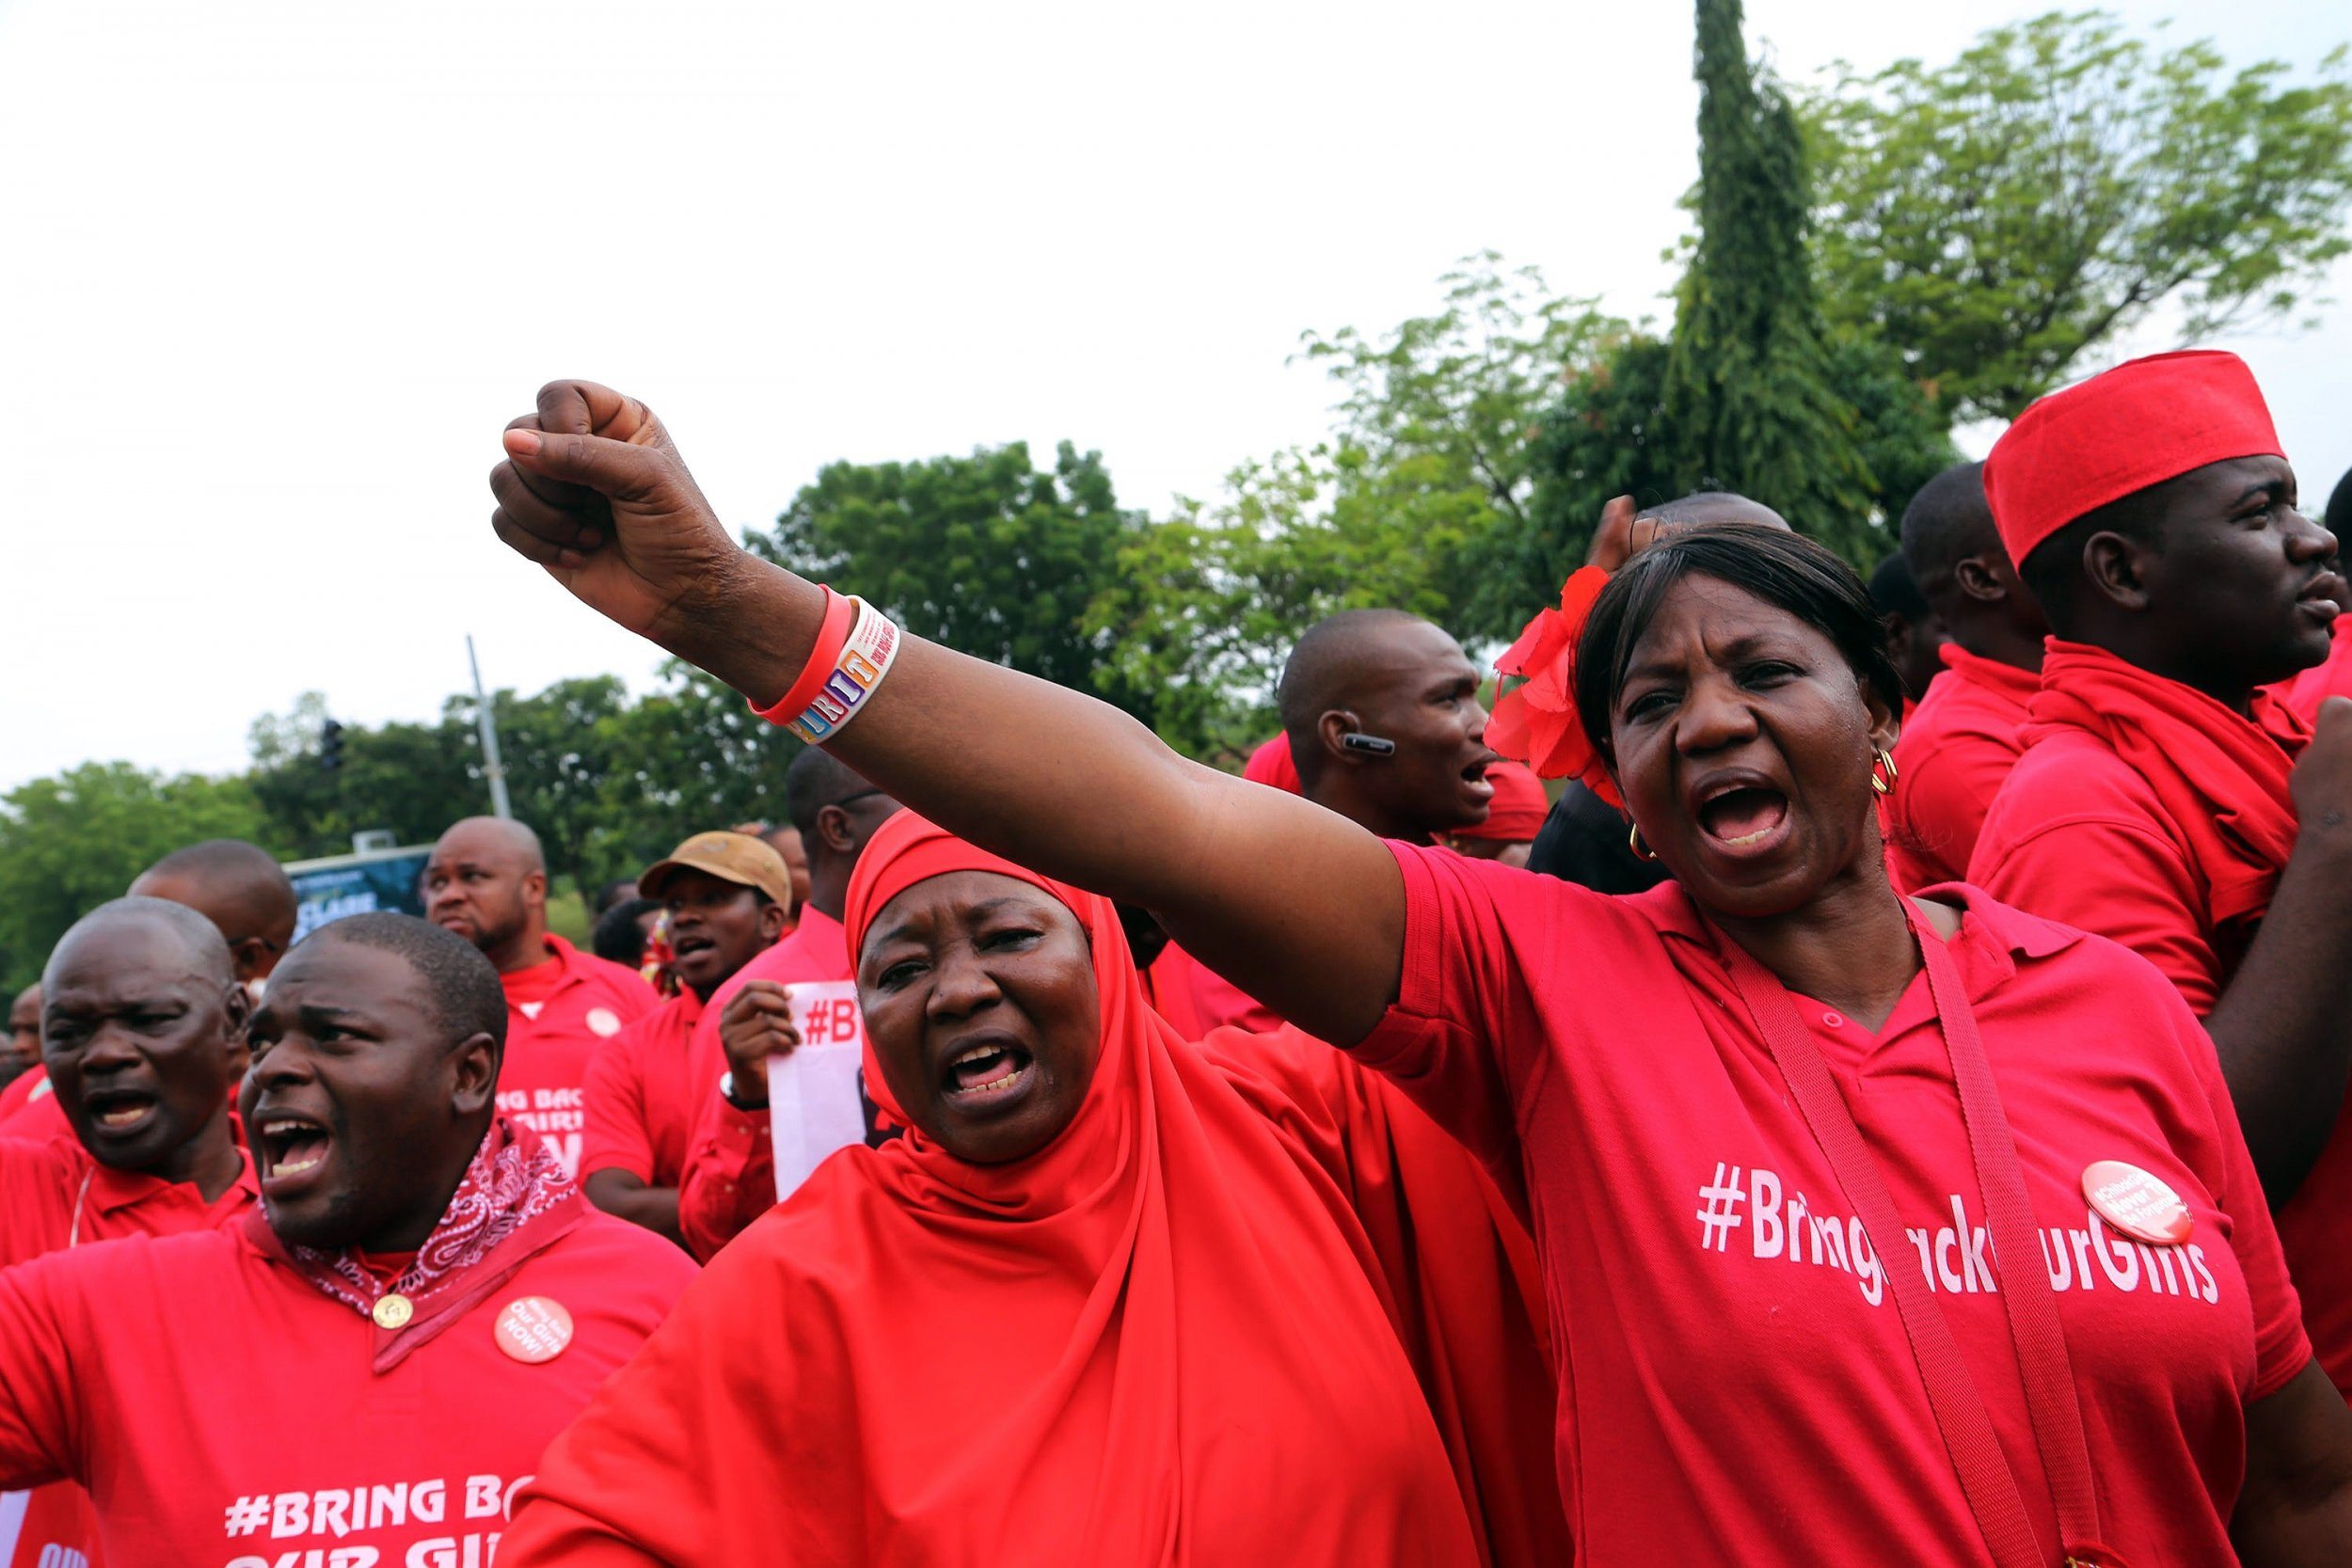 0113_Bring_Back_Our_Girls_campaigners